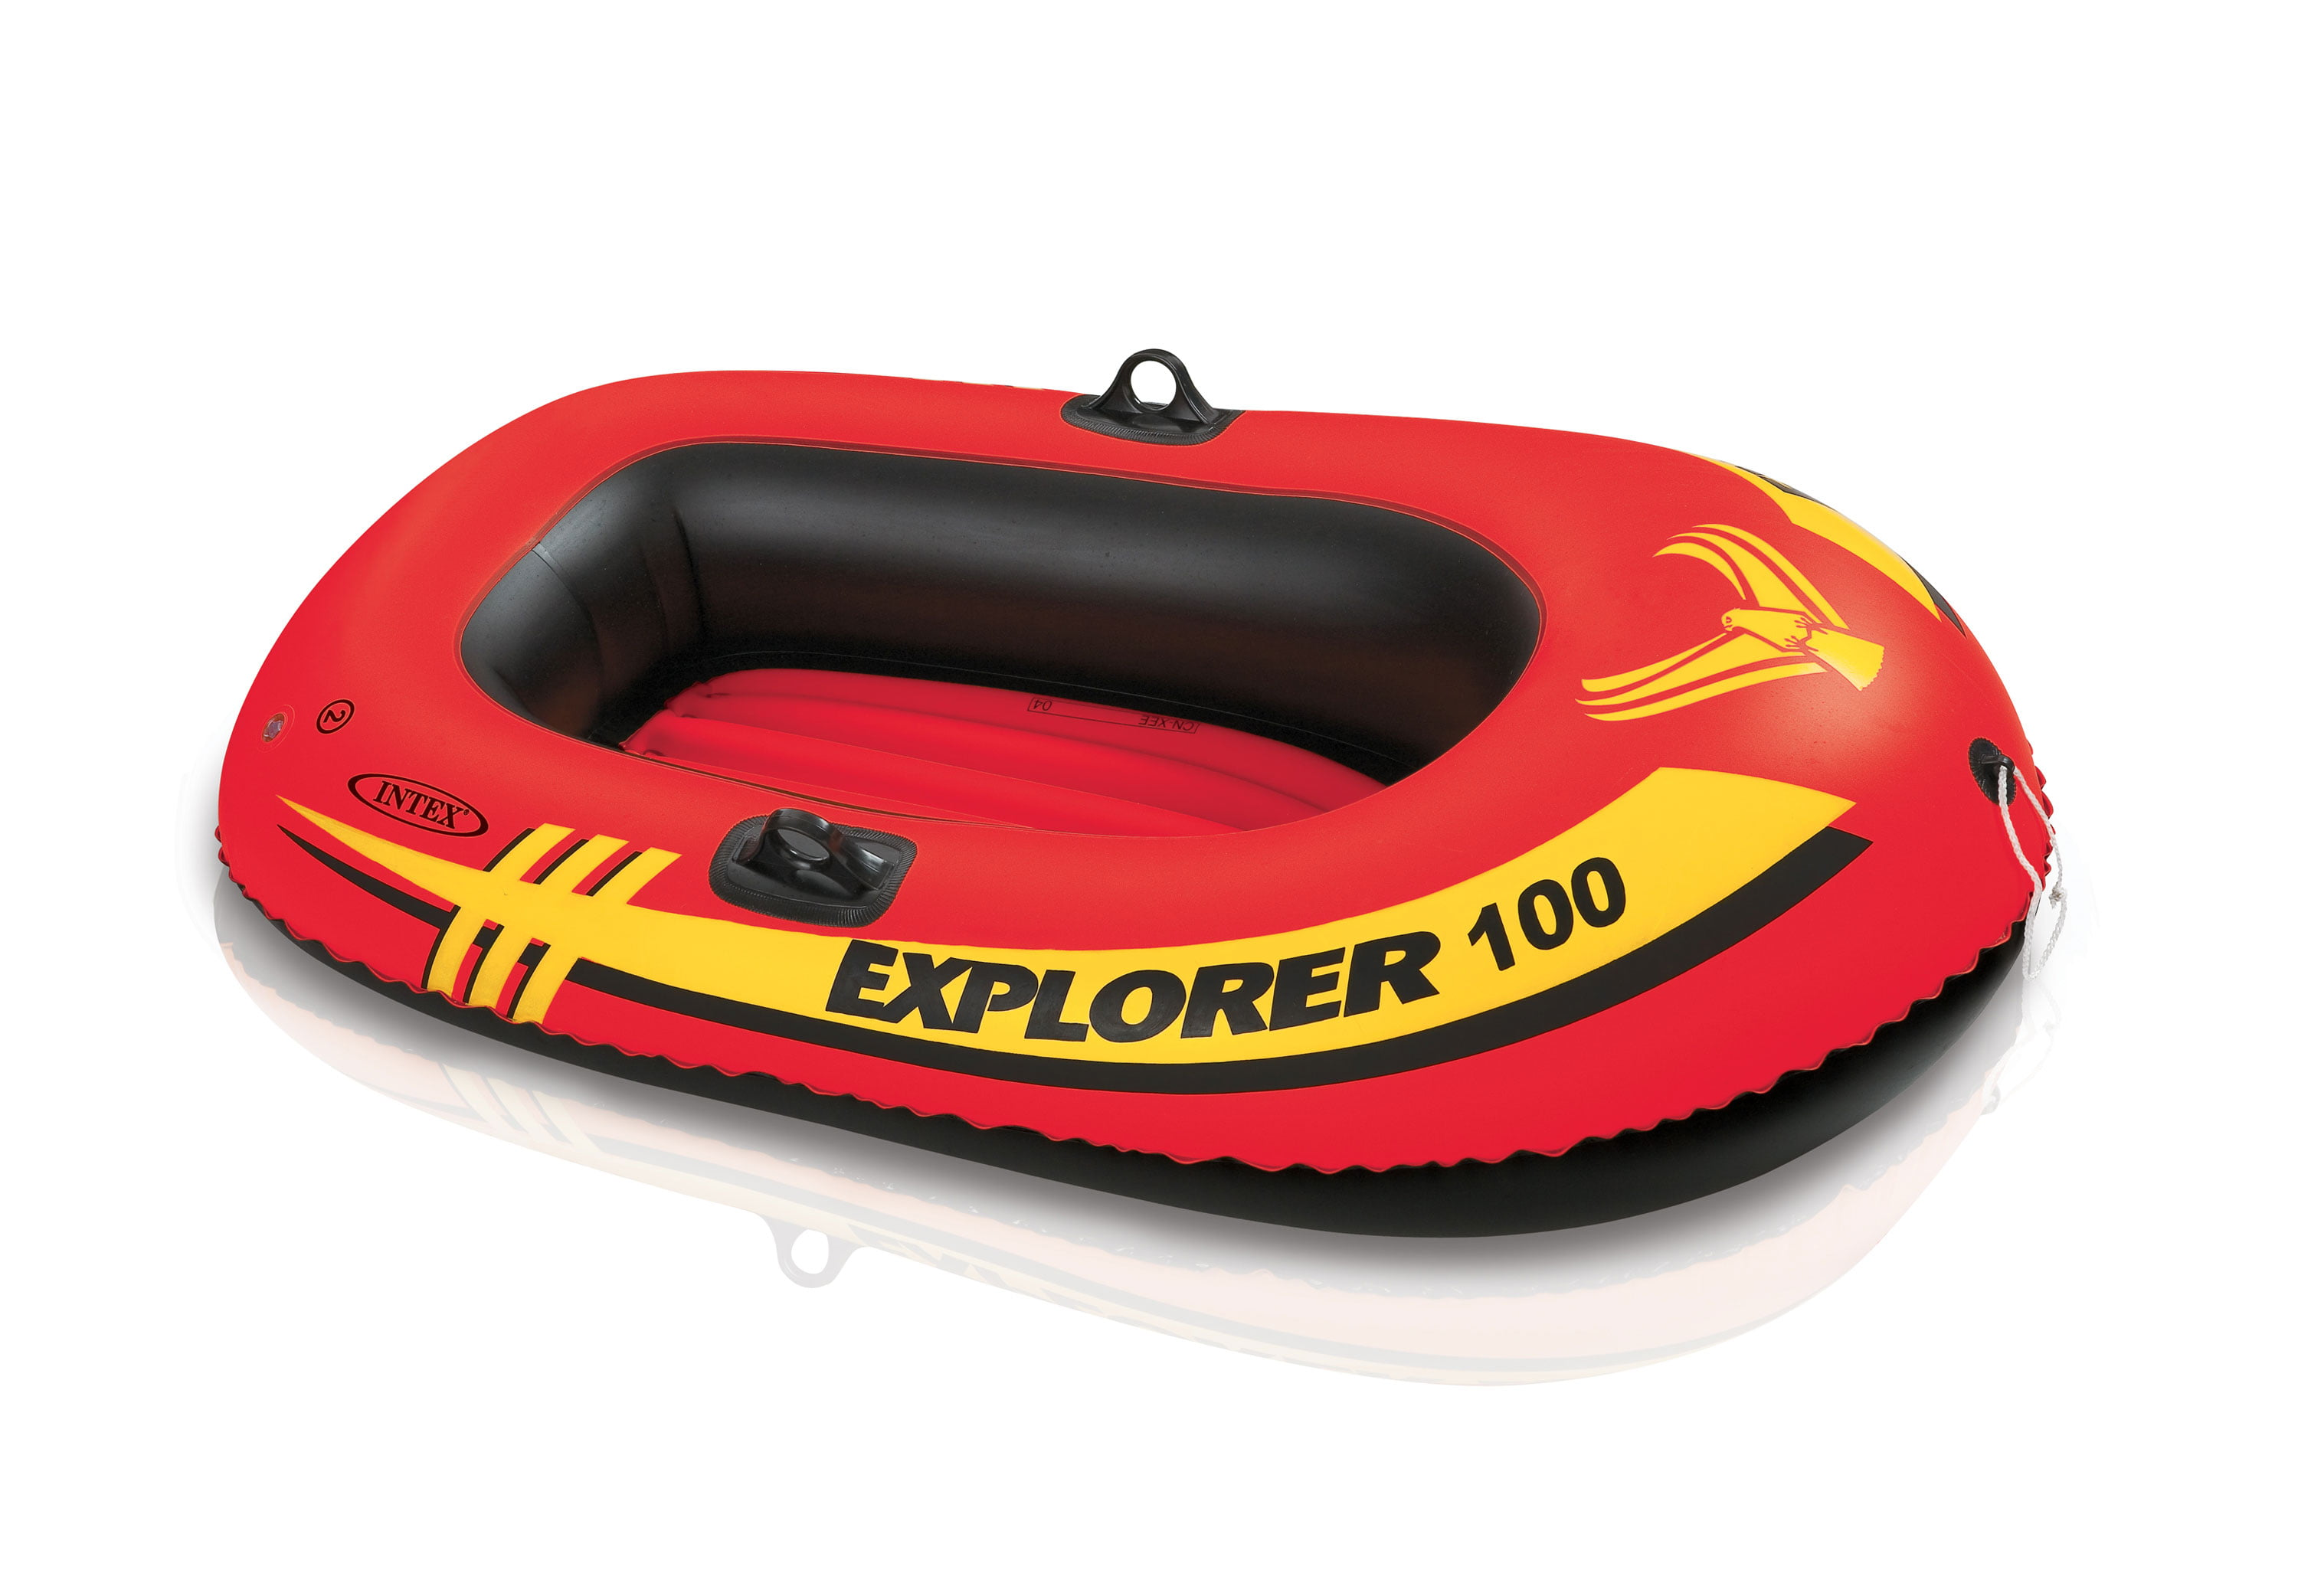 Intex Explorer 100 Boat by Intex